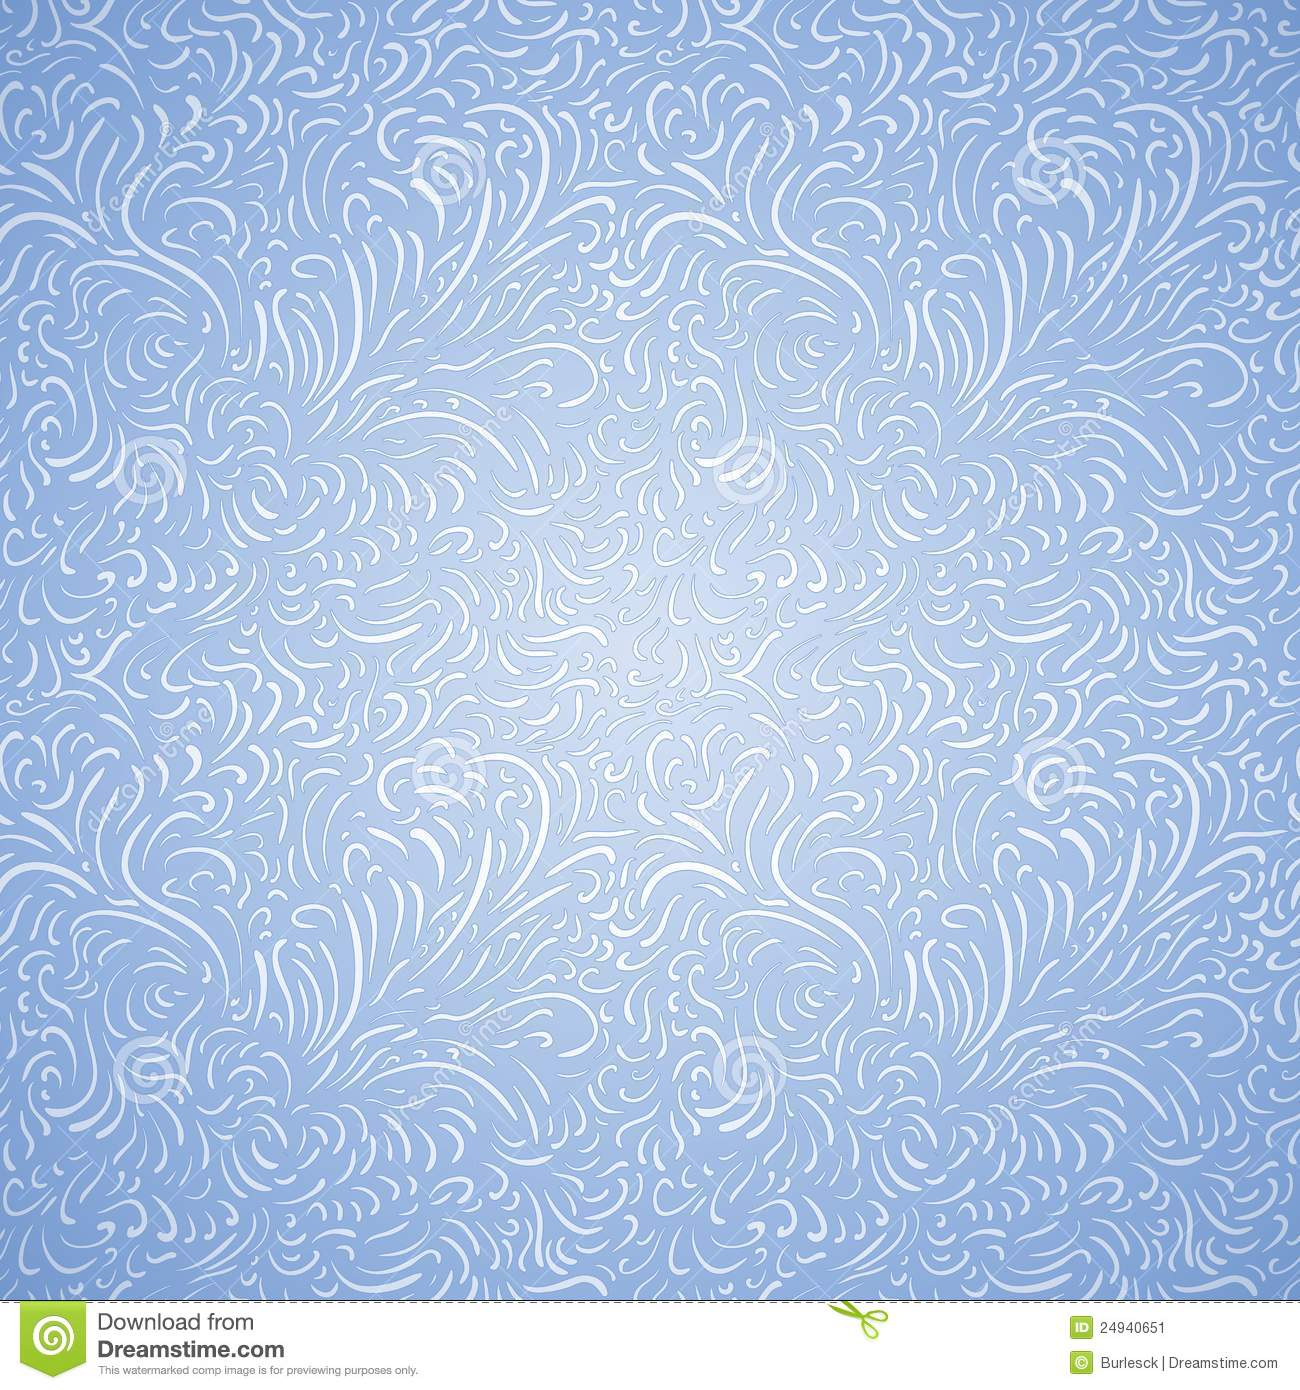 Seamless Frost Decor Pattern Stock Image.